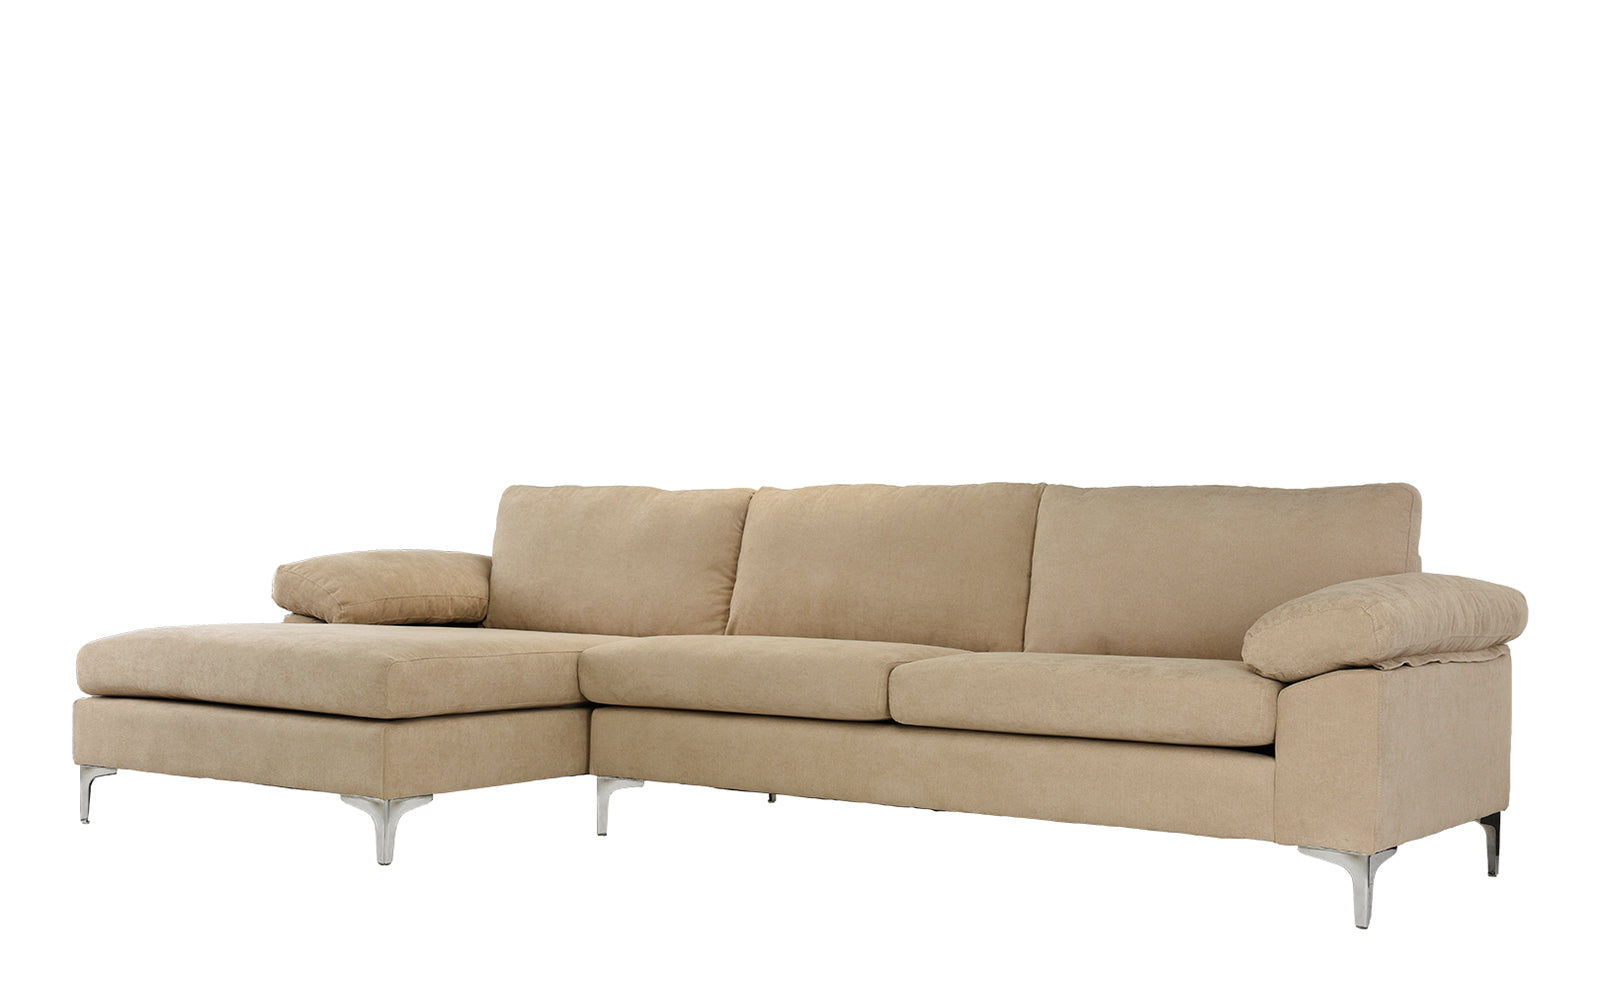 Luna Modern Sectional Sofa with Wide Chaise Sofamaniacom